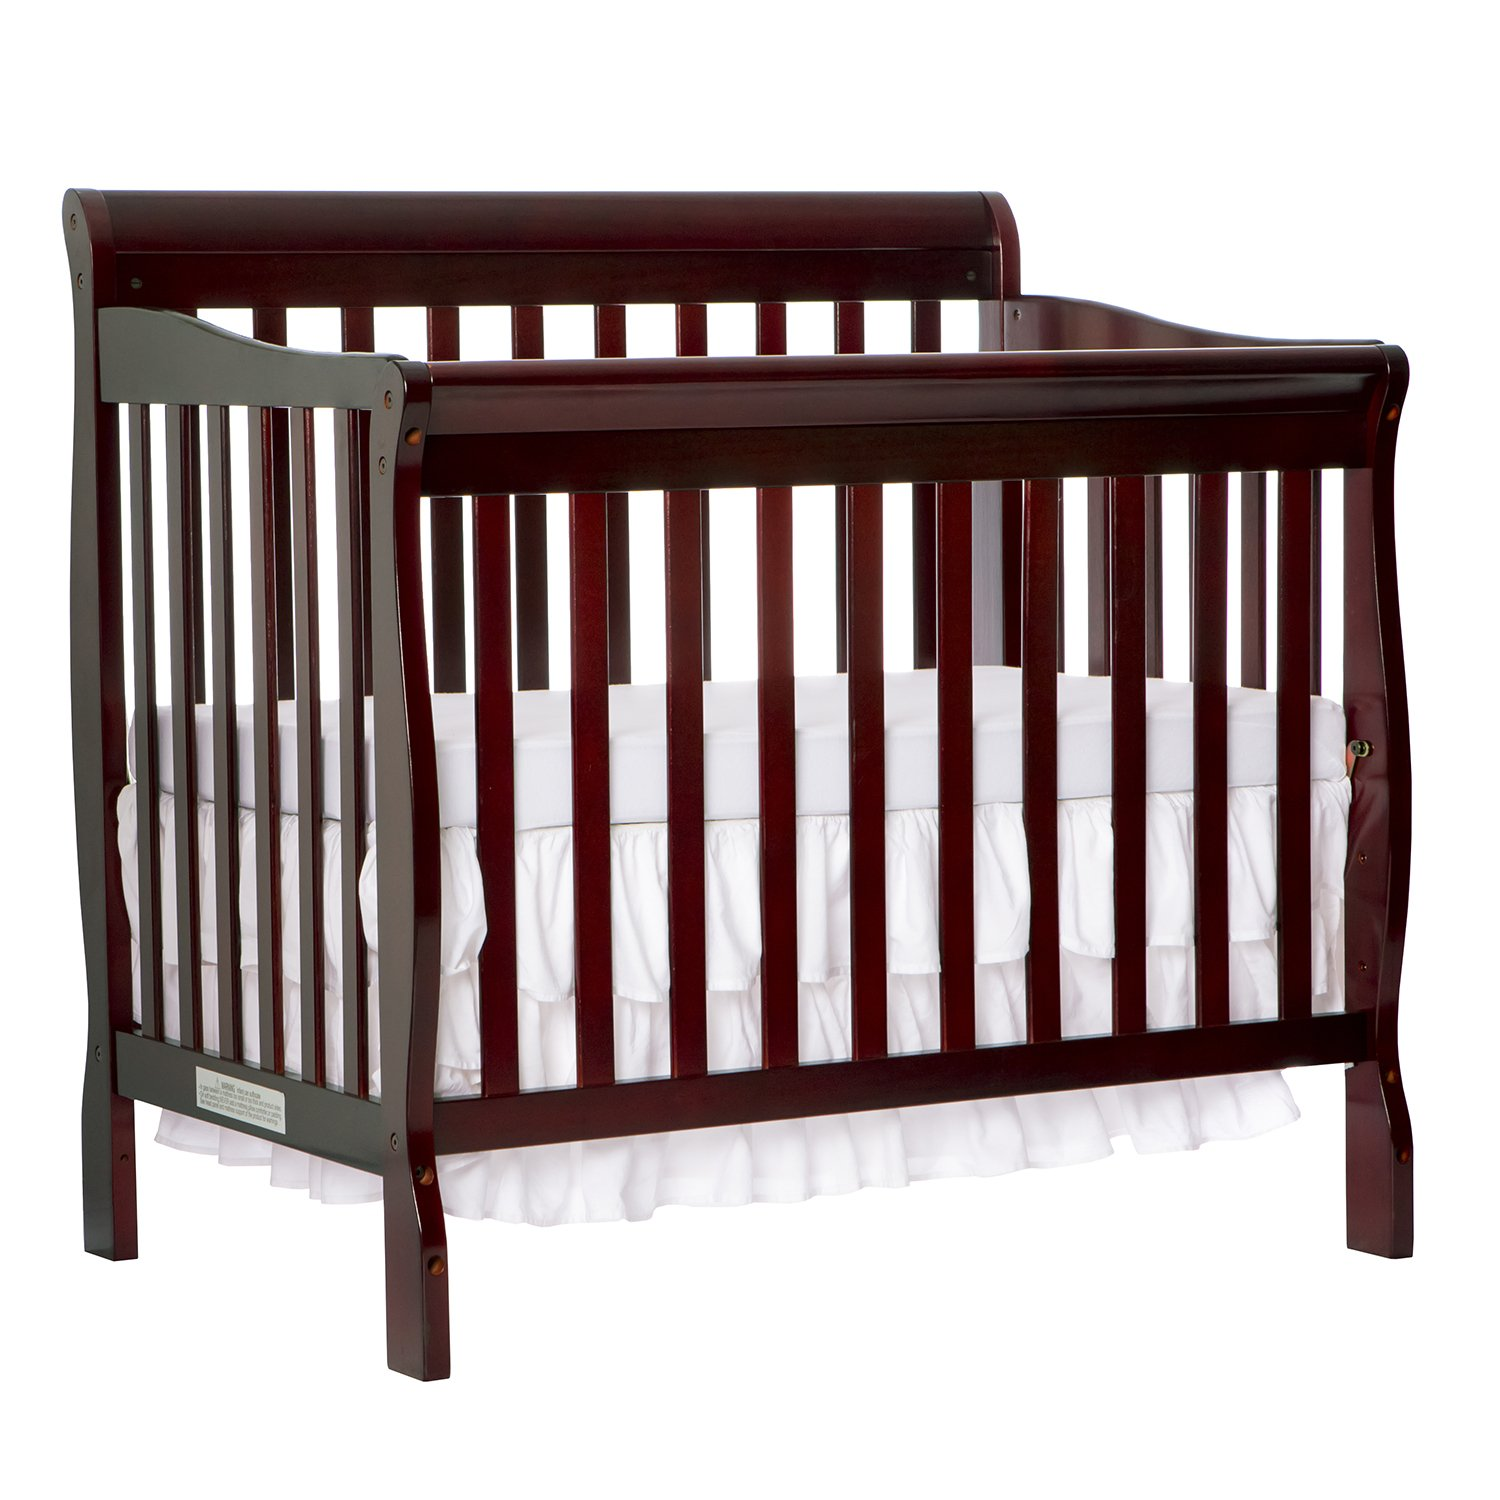 of toyhouse pinterest crib for swing lovely bed with cribs baby on best cradle function unique buy beautiful images sale